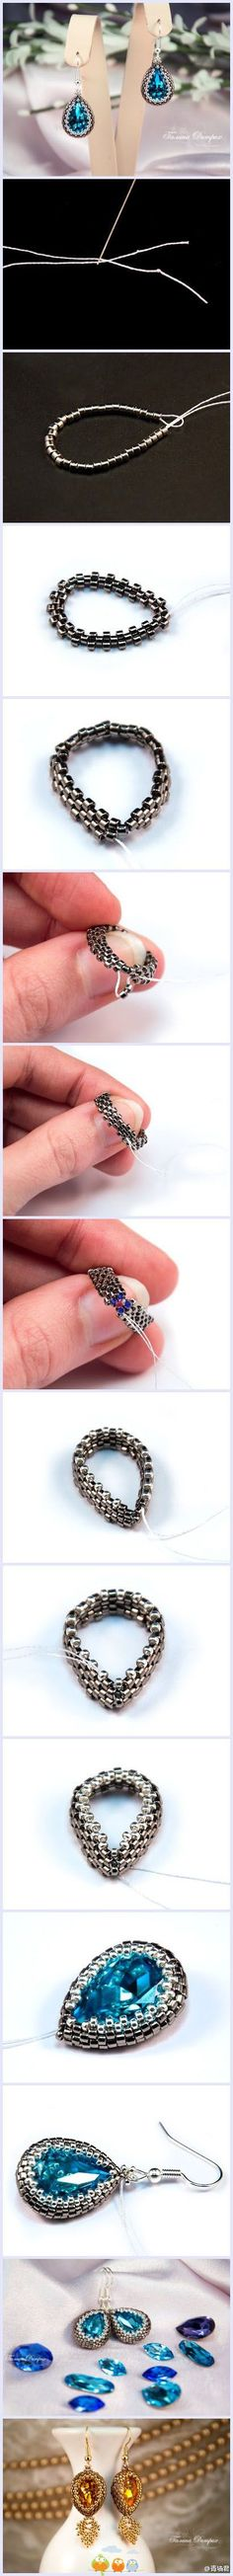 Earrings...free tutorial